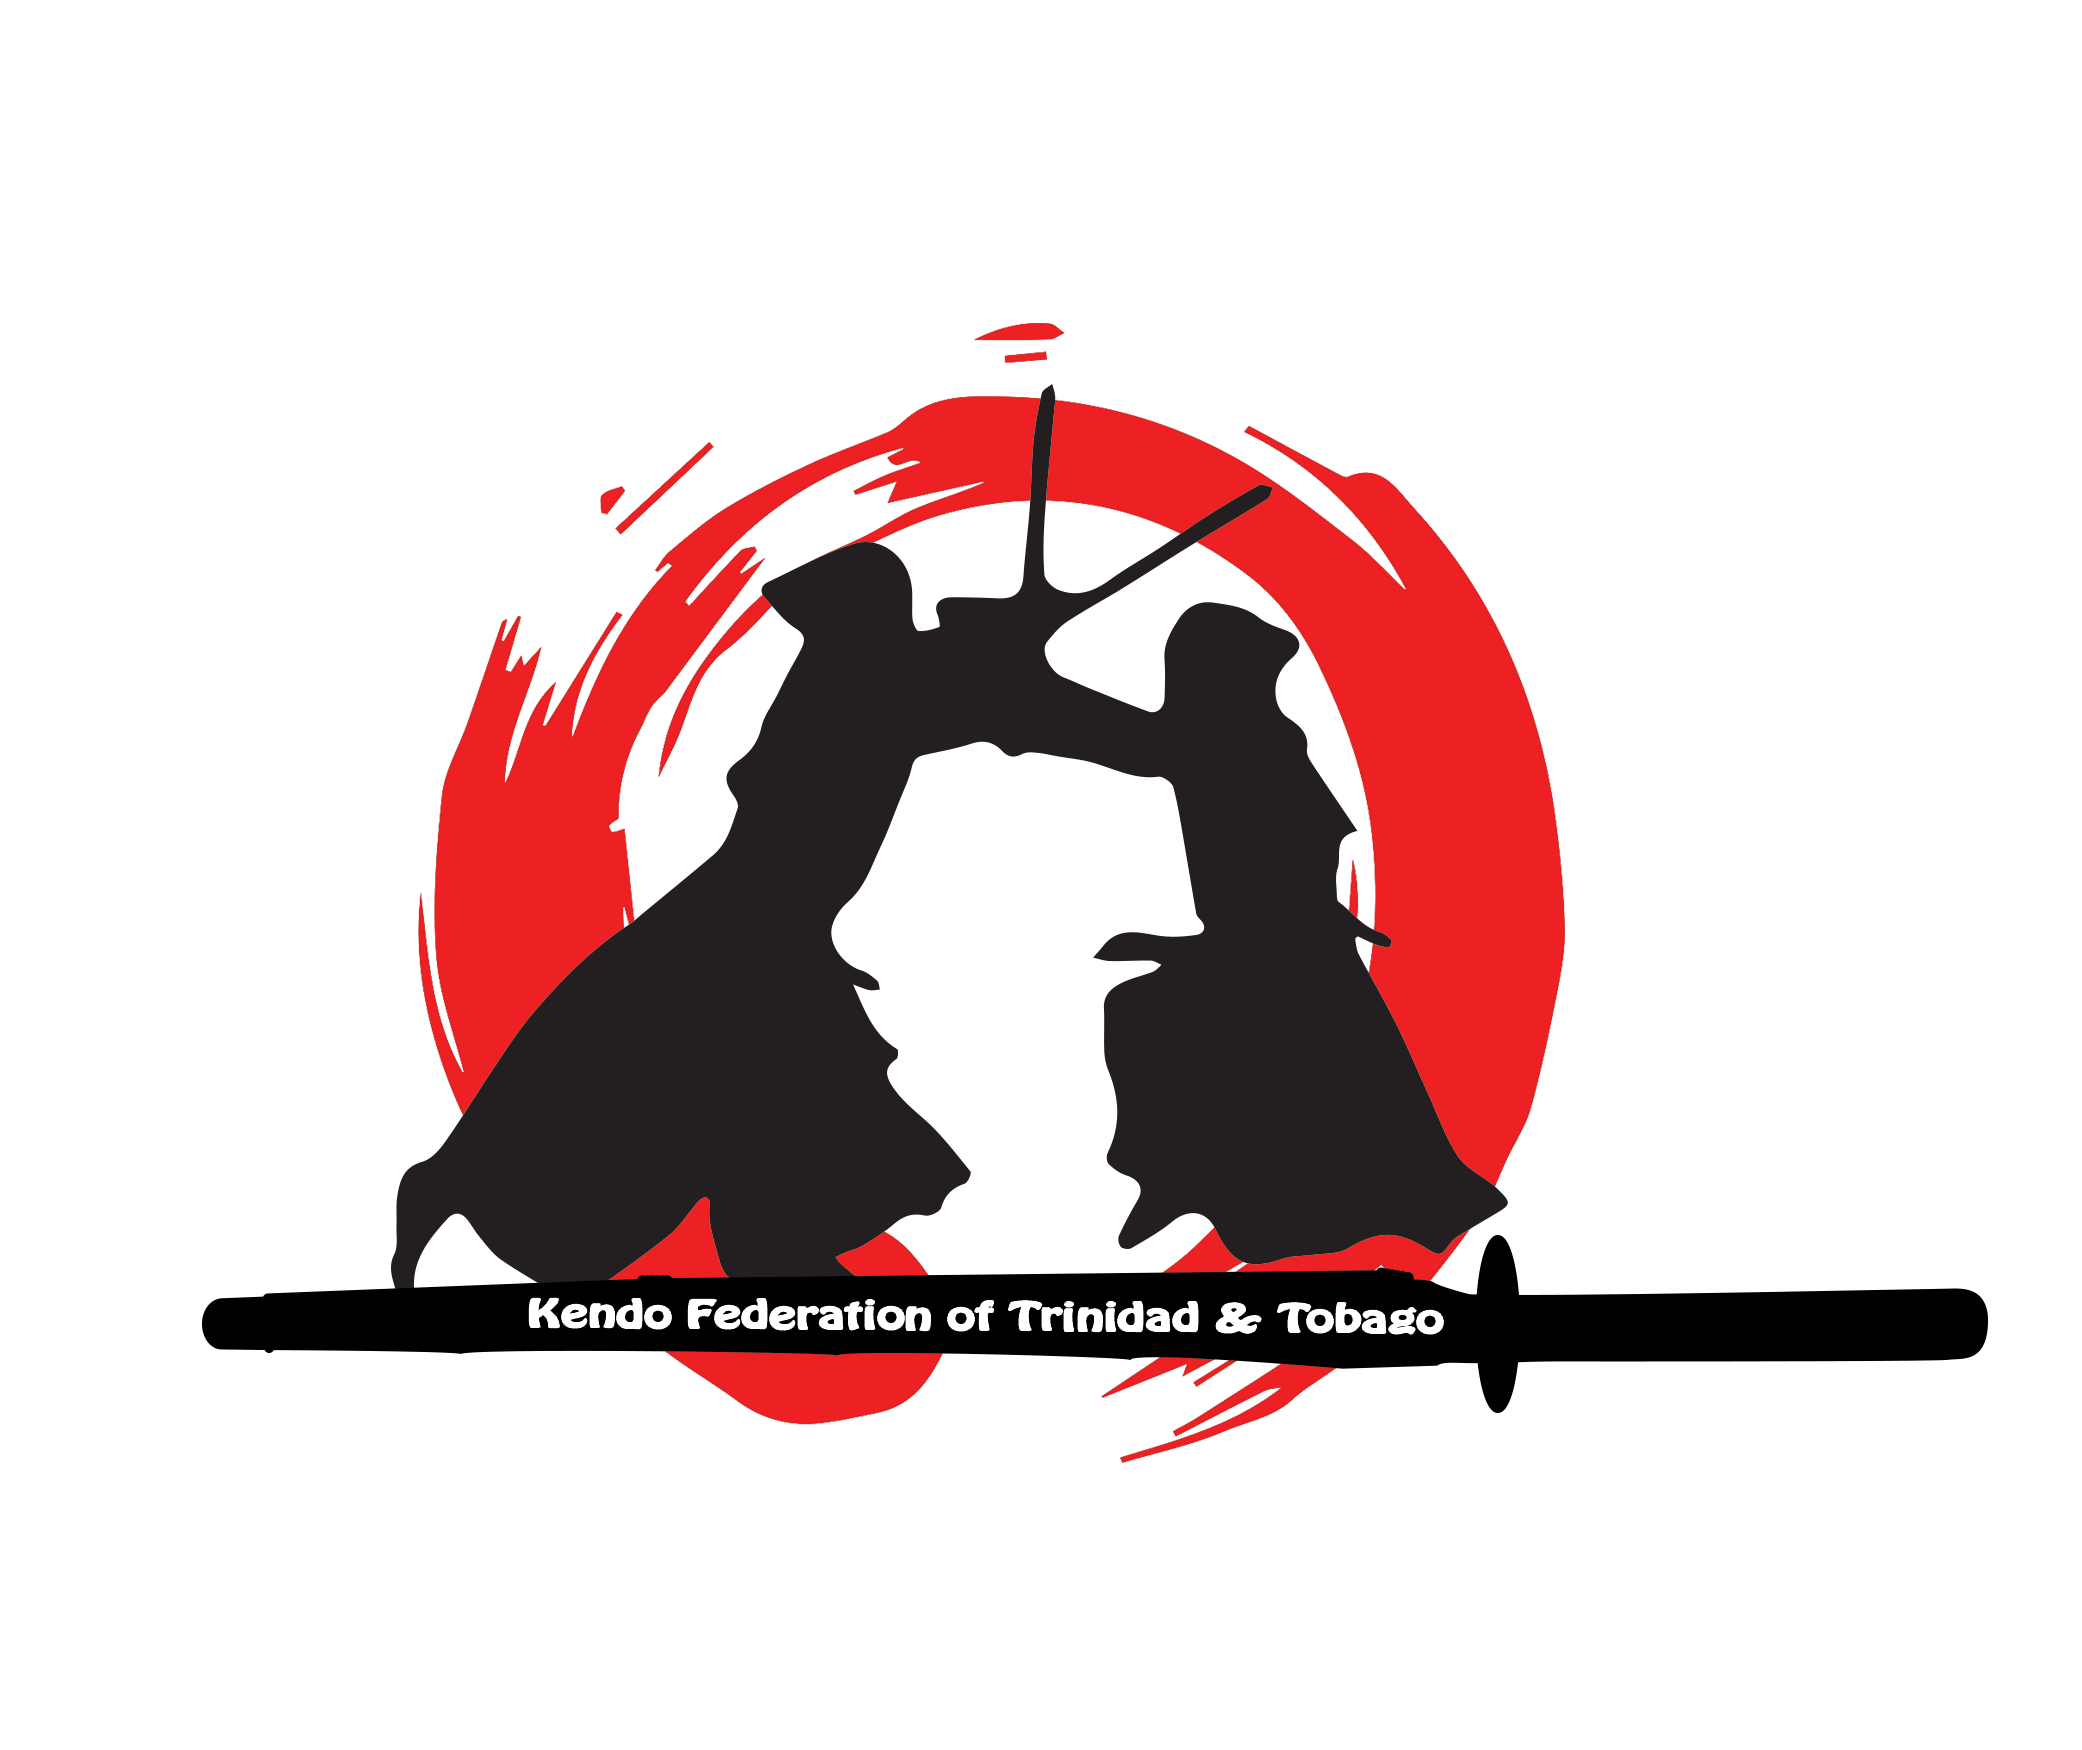 kendo federation logo design